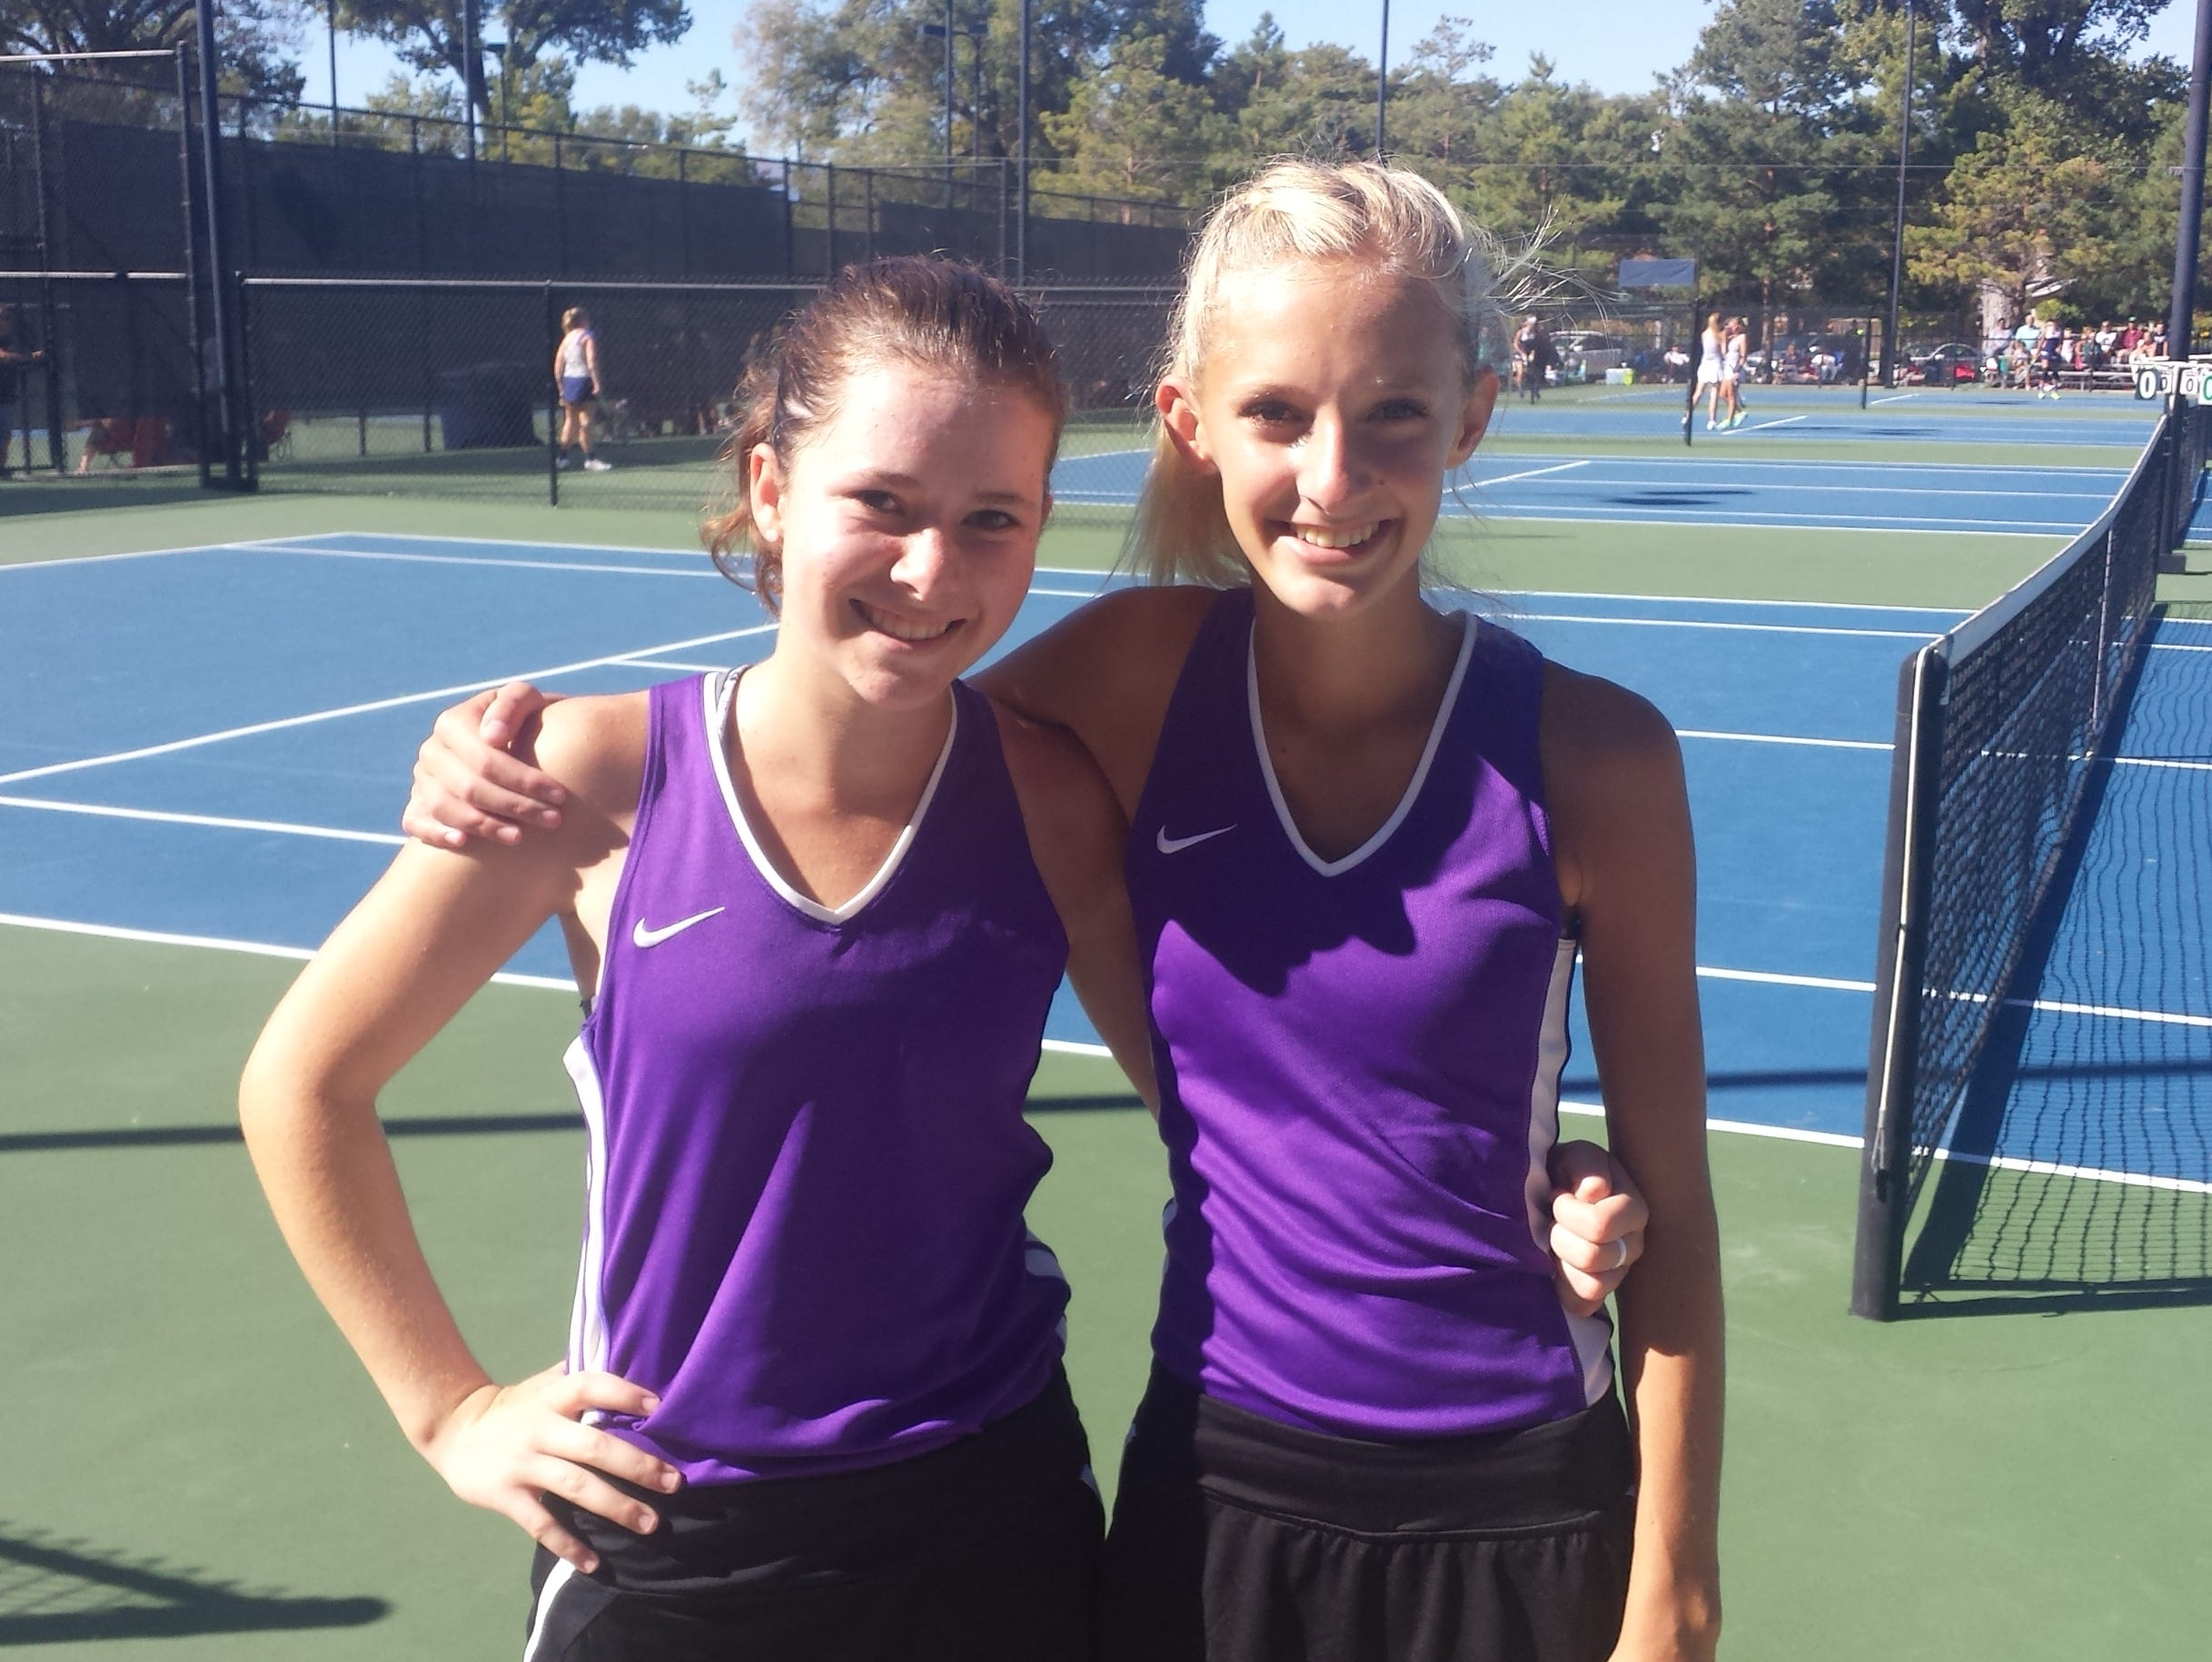 Desert Hills' Abbie Carmack and Lyndsi Graf lost in the semis Saturday morning at Liberty Park during the 3A state tennis tournament.